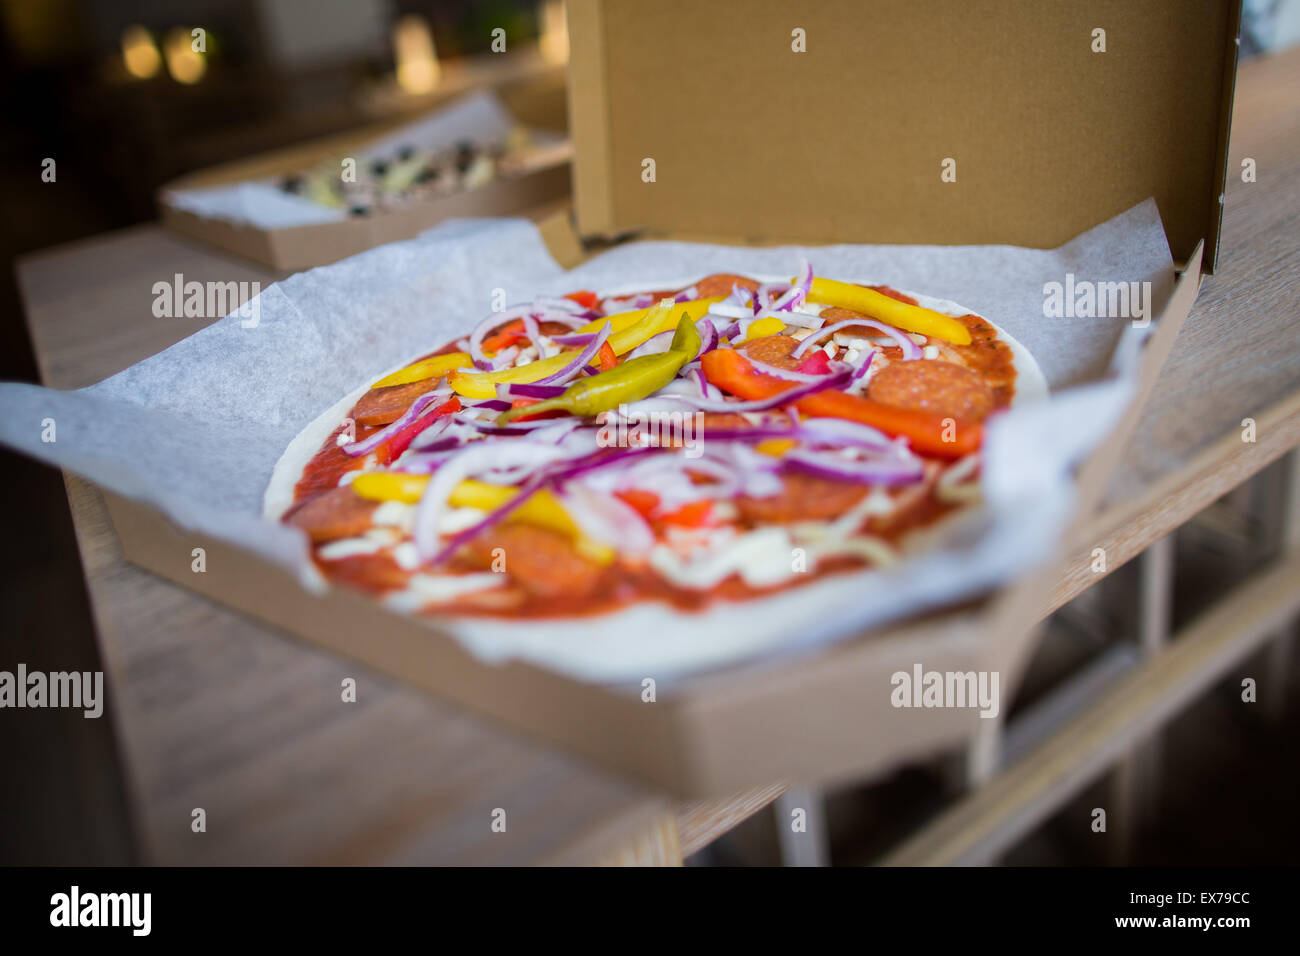 Pizza Family Braunschweig Hopes Future Stock Photos Hopes Future Stock Images Alamy